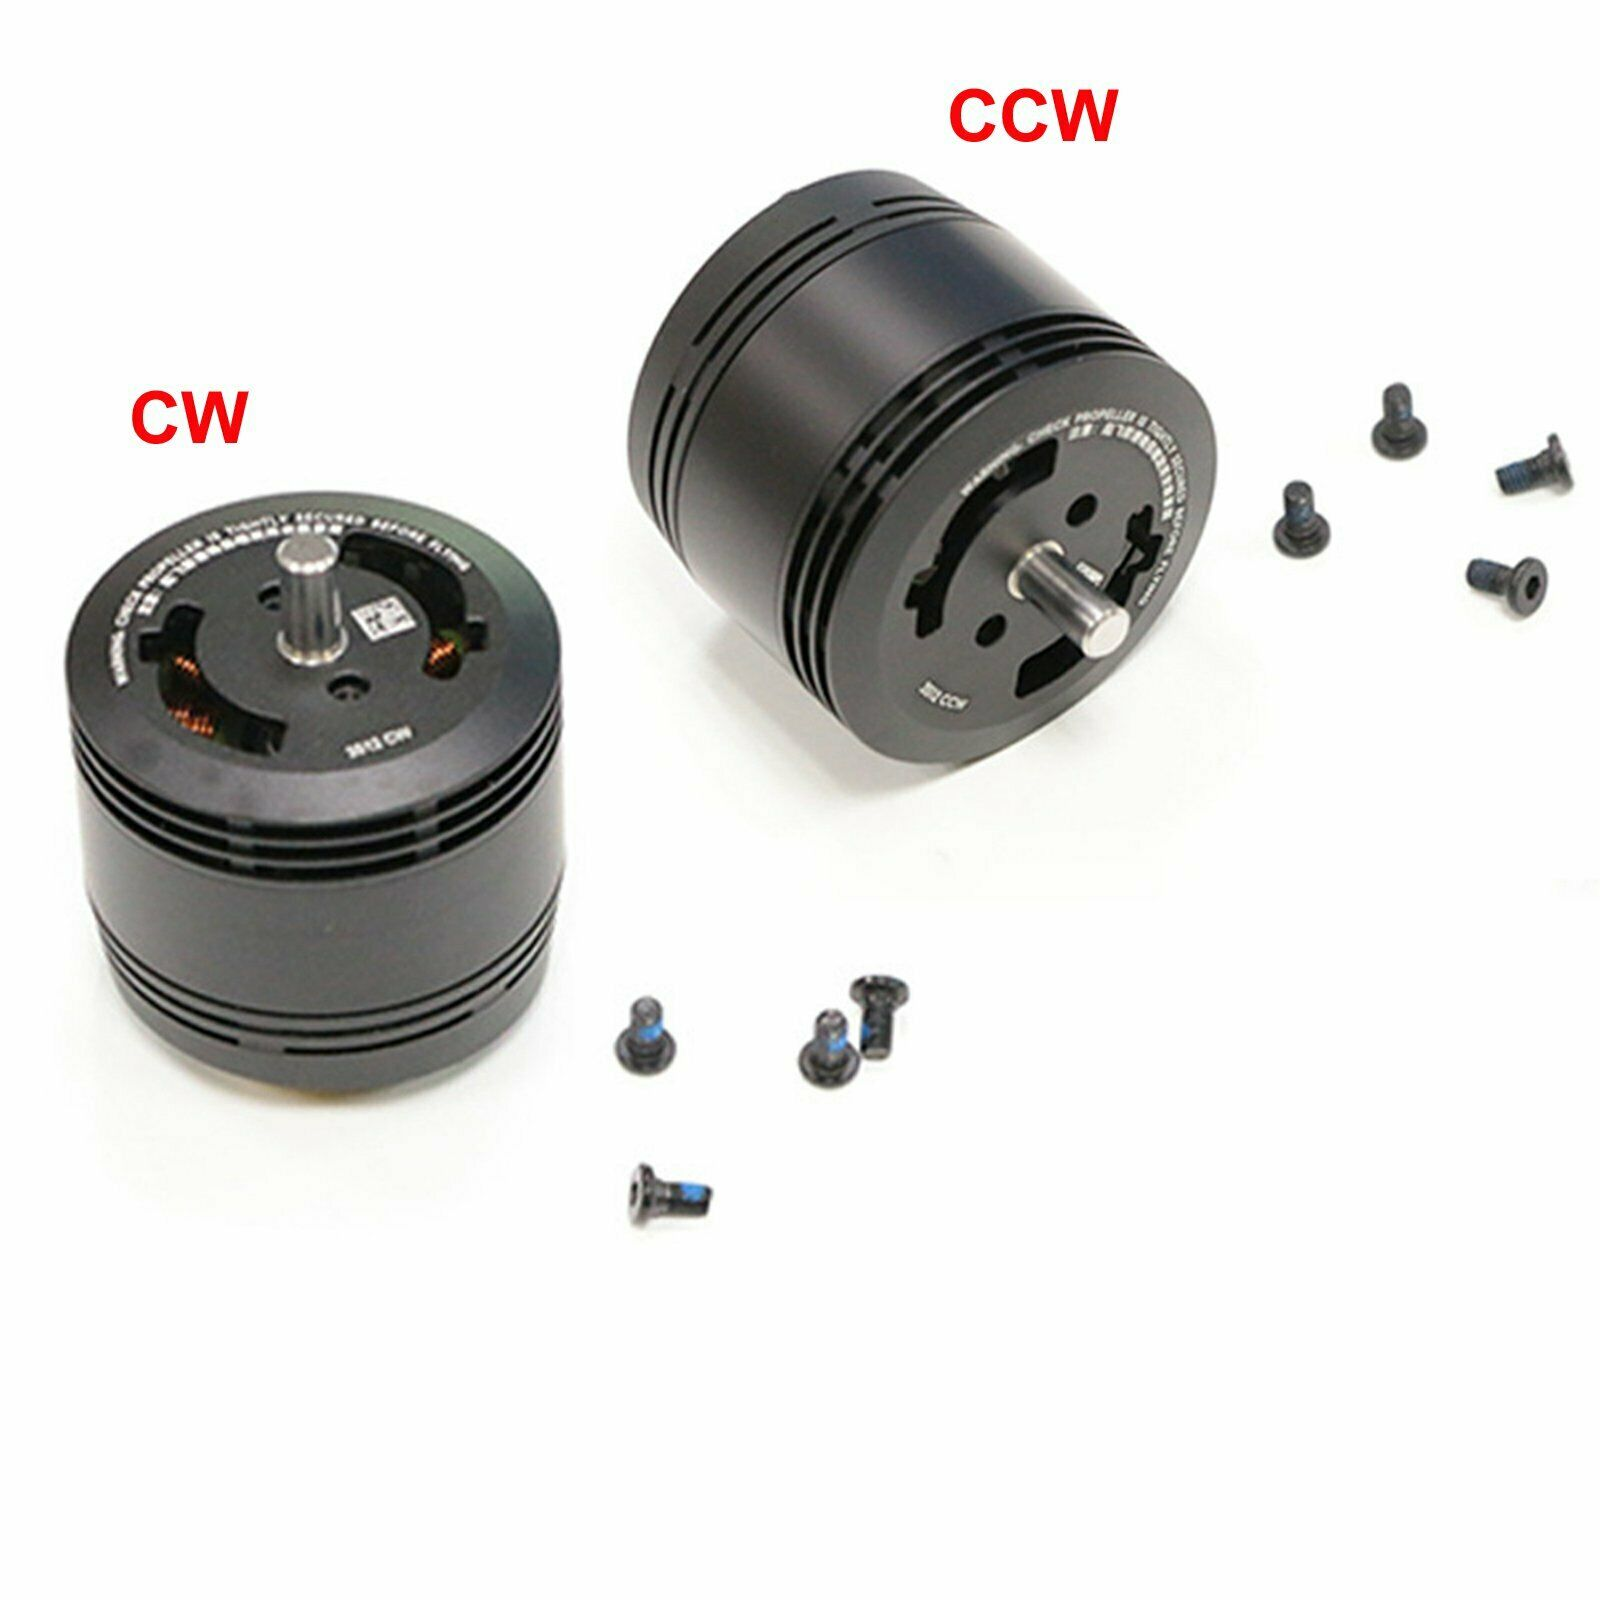 For DJI Inspire 2 Drone Original 3512 Motor CCW  CW Motor Repair Part Accessories  consegna lampo